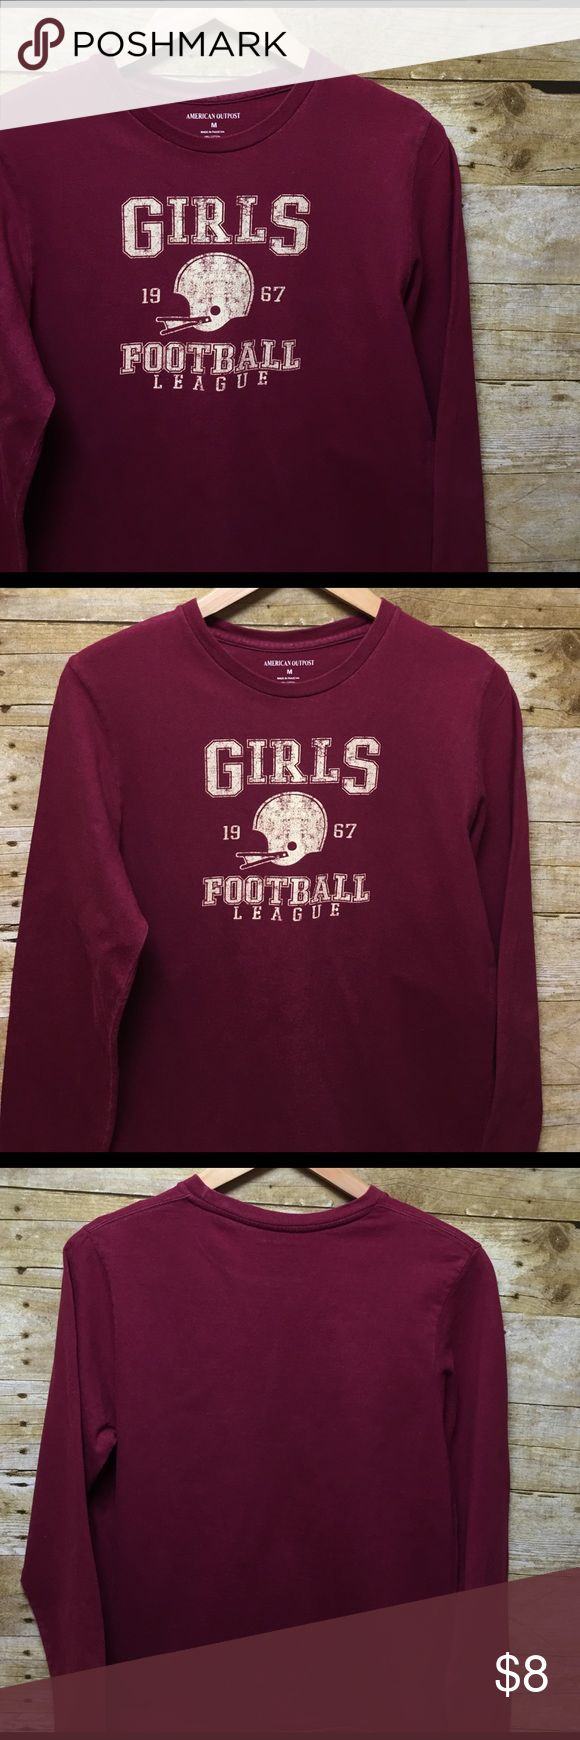 long sleeve tee - American Outpost long sleeve tee - American Outpost size medium has girls football league silkscreen on front American Outpost Tops